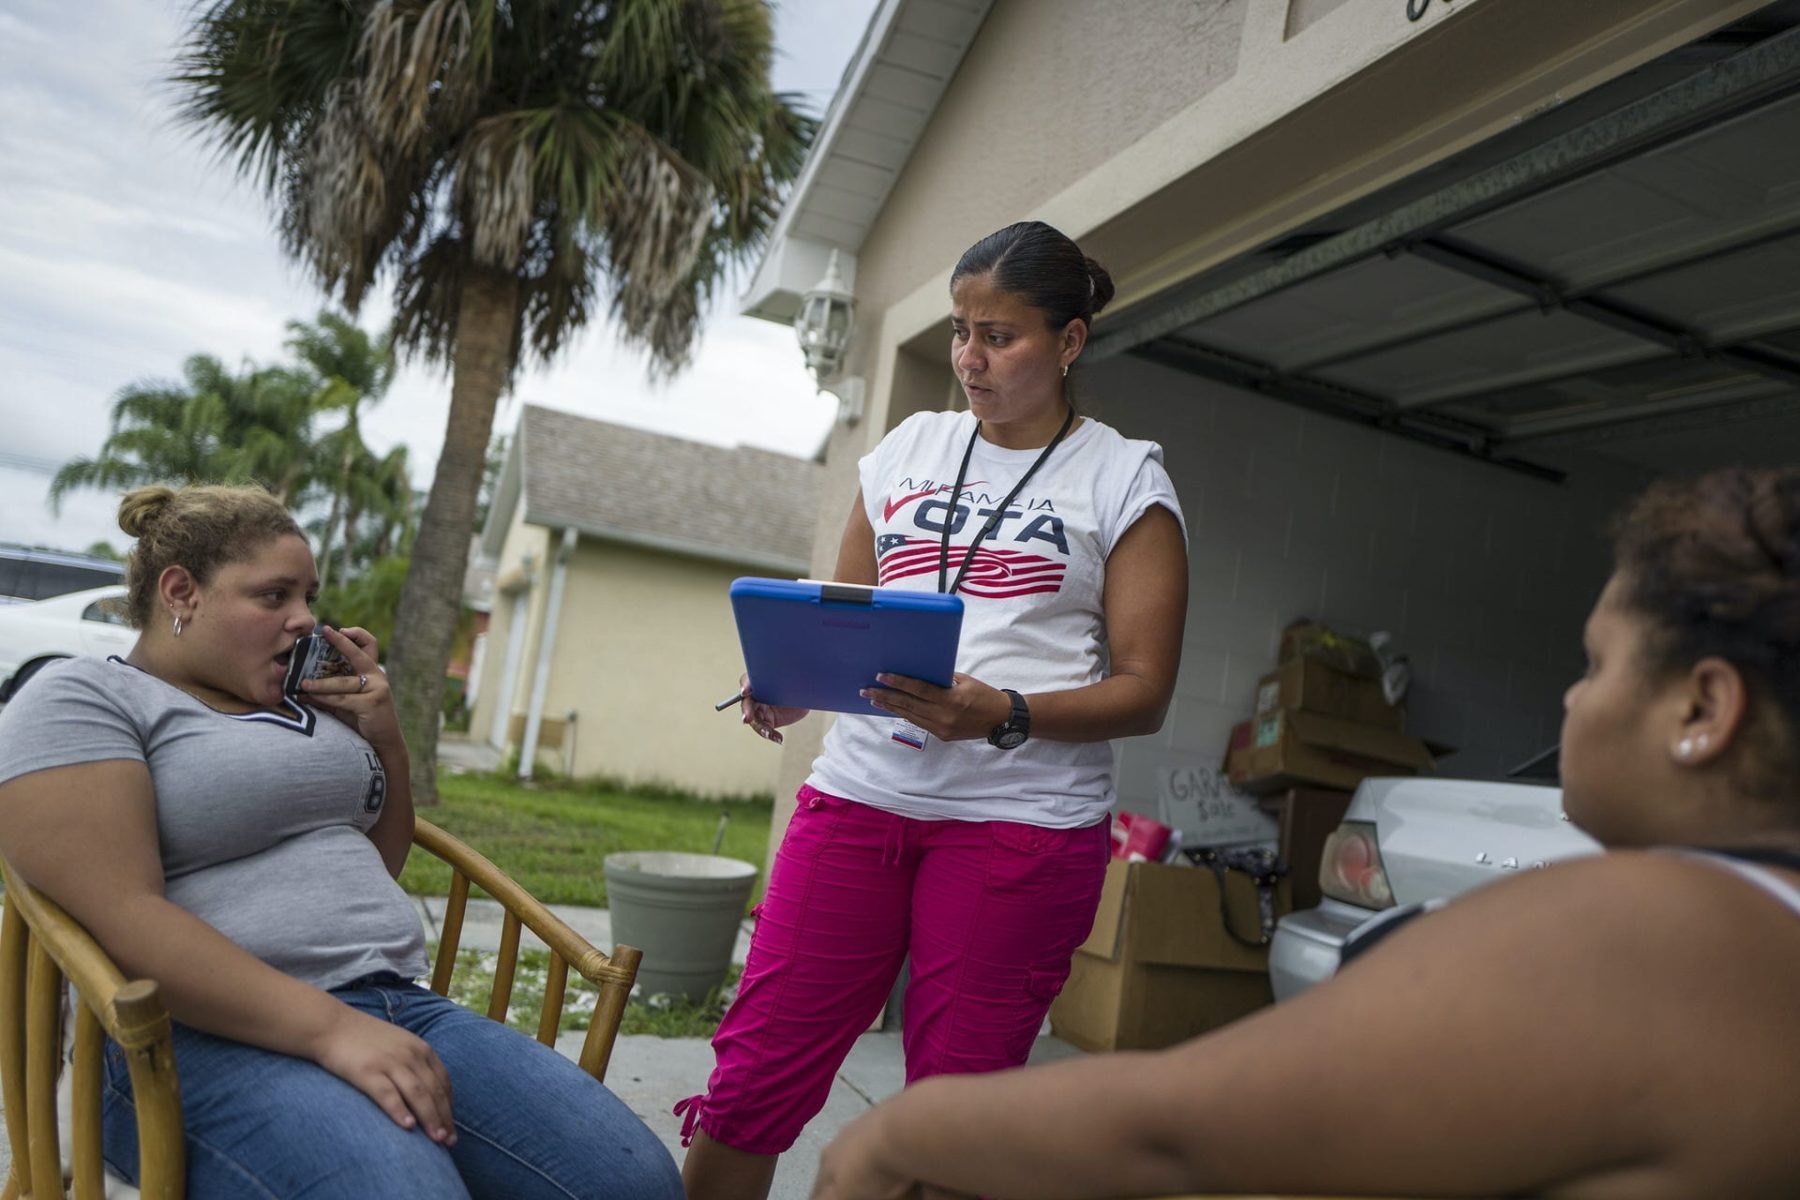 Soraya Marquez, the state coordinator for Mi Familia Vota and her crew hit a Puerto Rican neighborhood trying to get Latinos to register to vote in the 2016 presidential election on July 24, 2015 in Kissimmee, FL. Jeamy Ramirez gets a young girl (18) to register to vote in a Puerto Rican neighborhood in Kissimmee. (Photos by Charles Ommanney/The Washington Post via Getty Images)